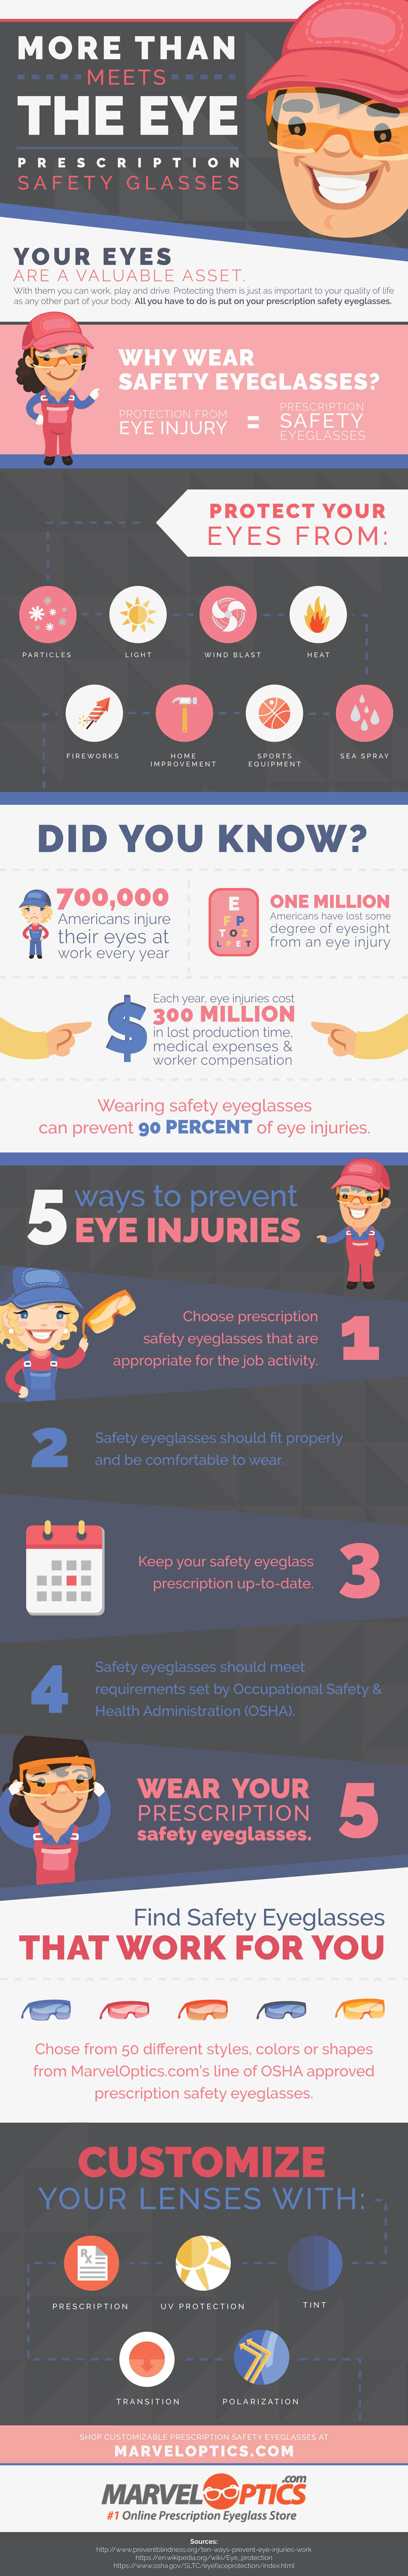 marveloptics-safetyglasses-infographic